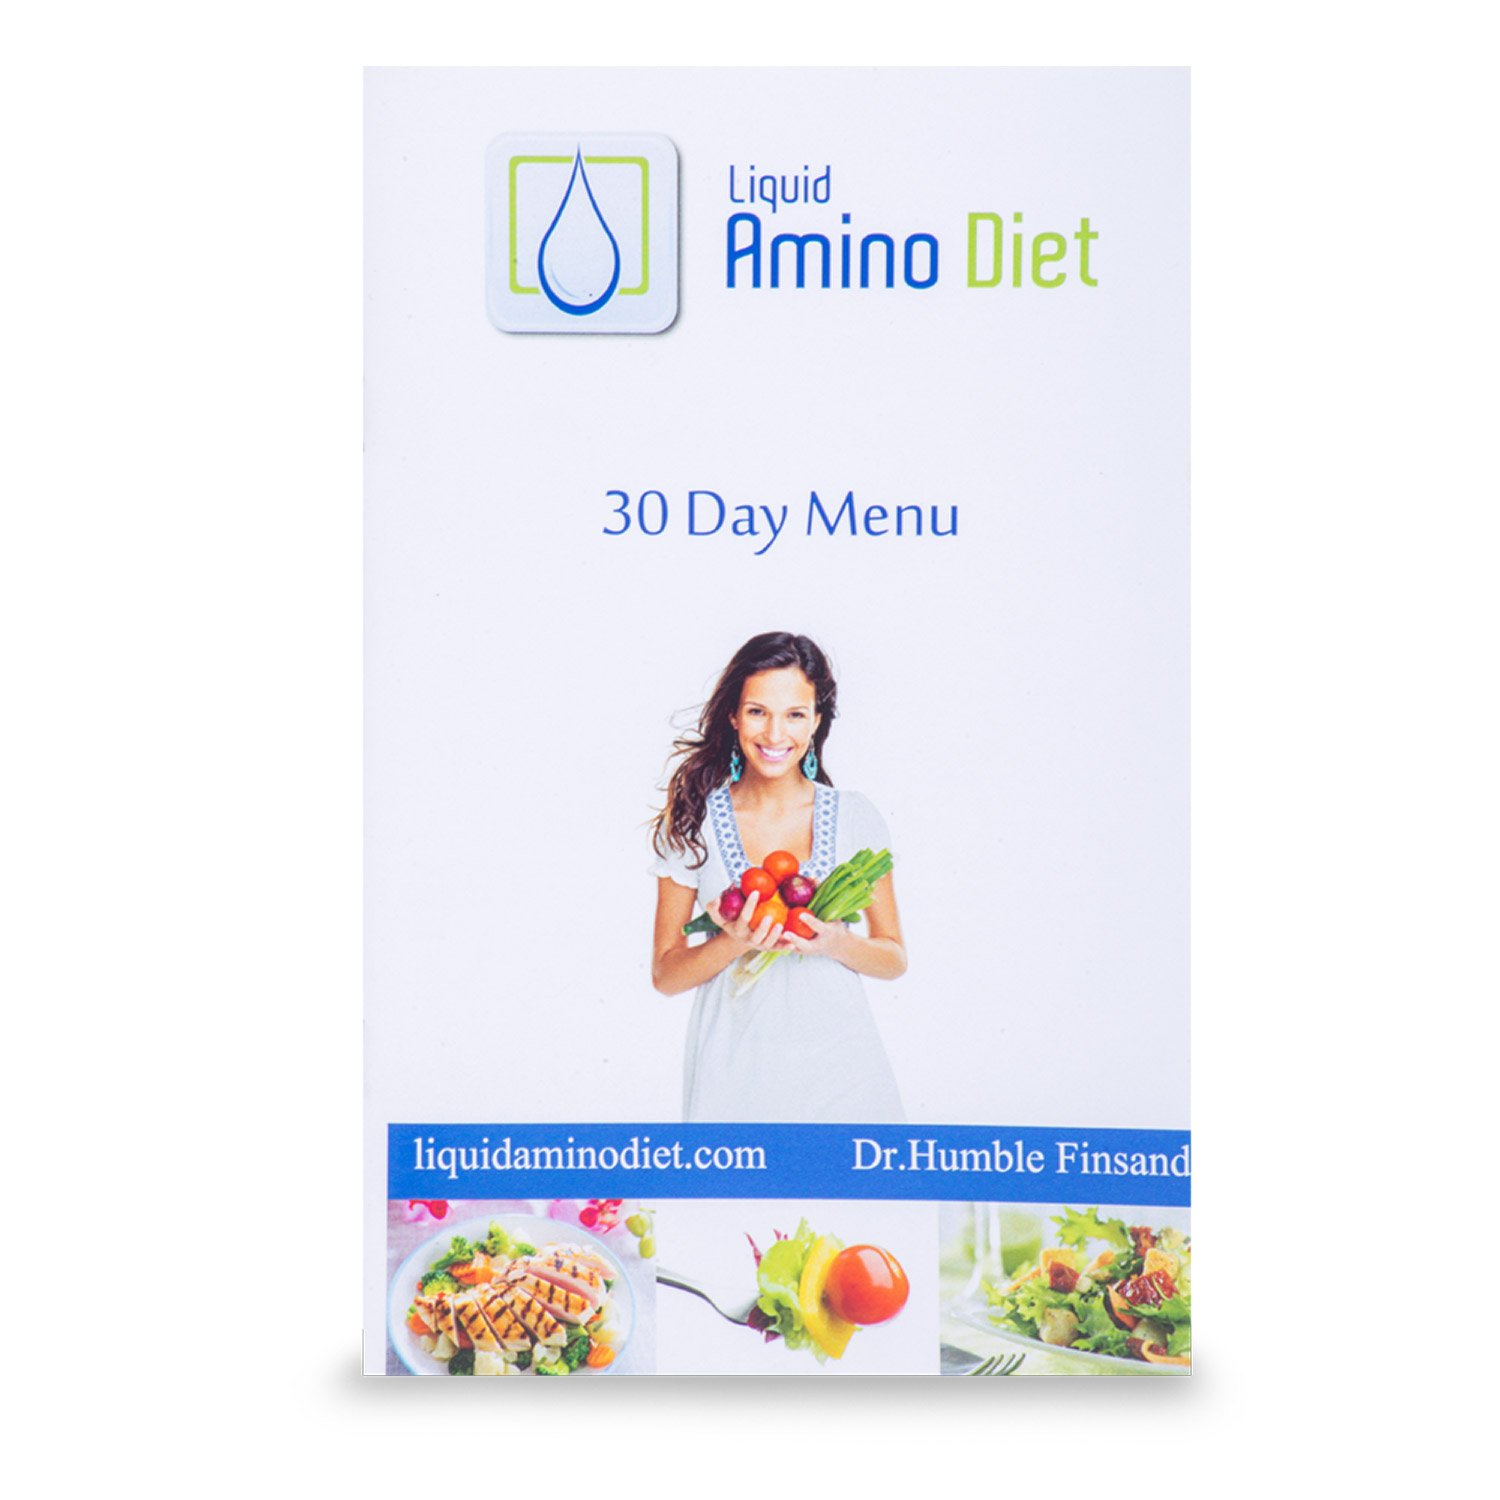 Amino Diet 60 day weight loss program - Lose 30-60 pounds (Regular Guidebook) by Amino Diet